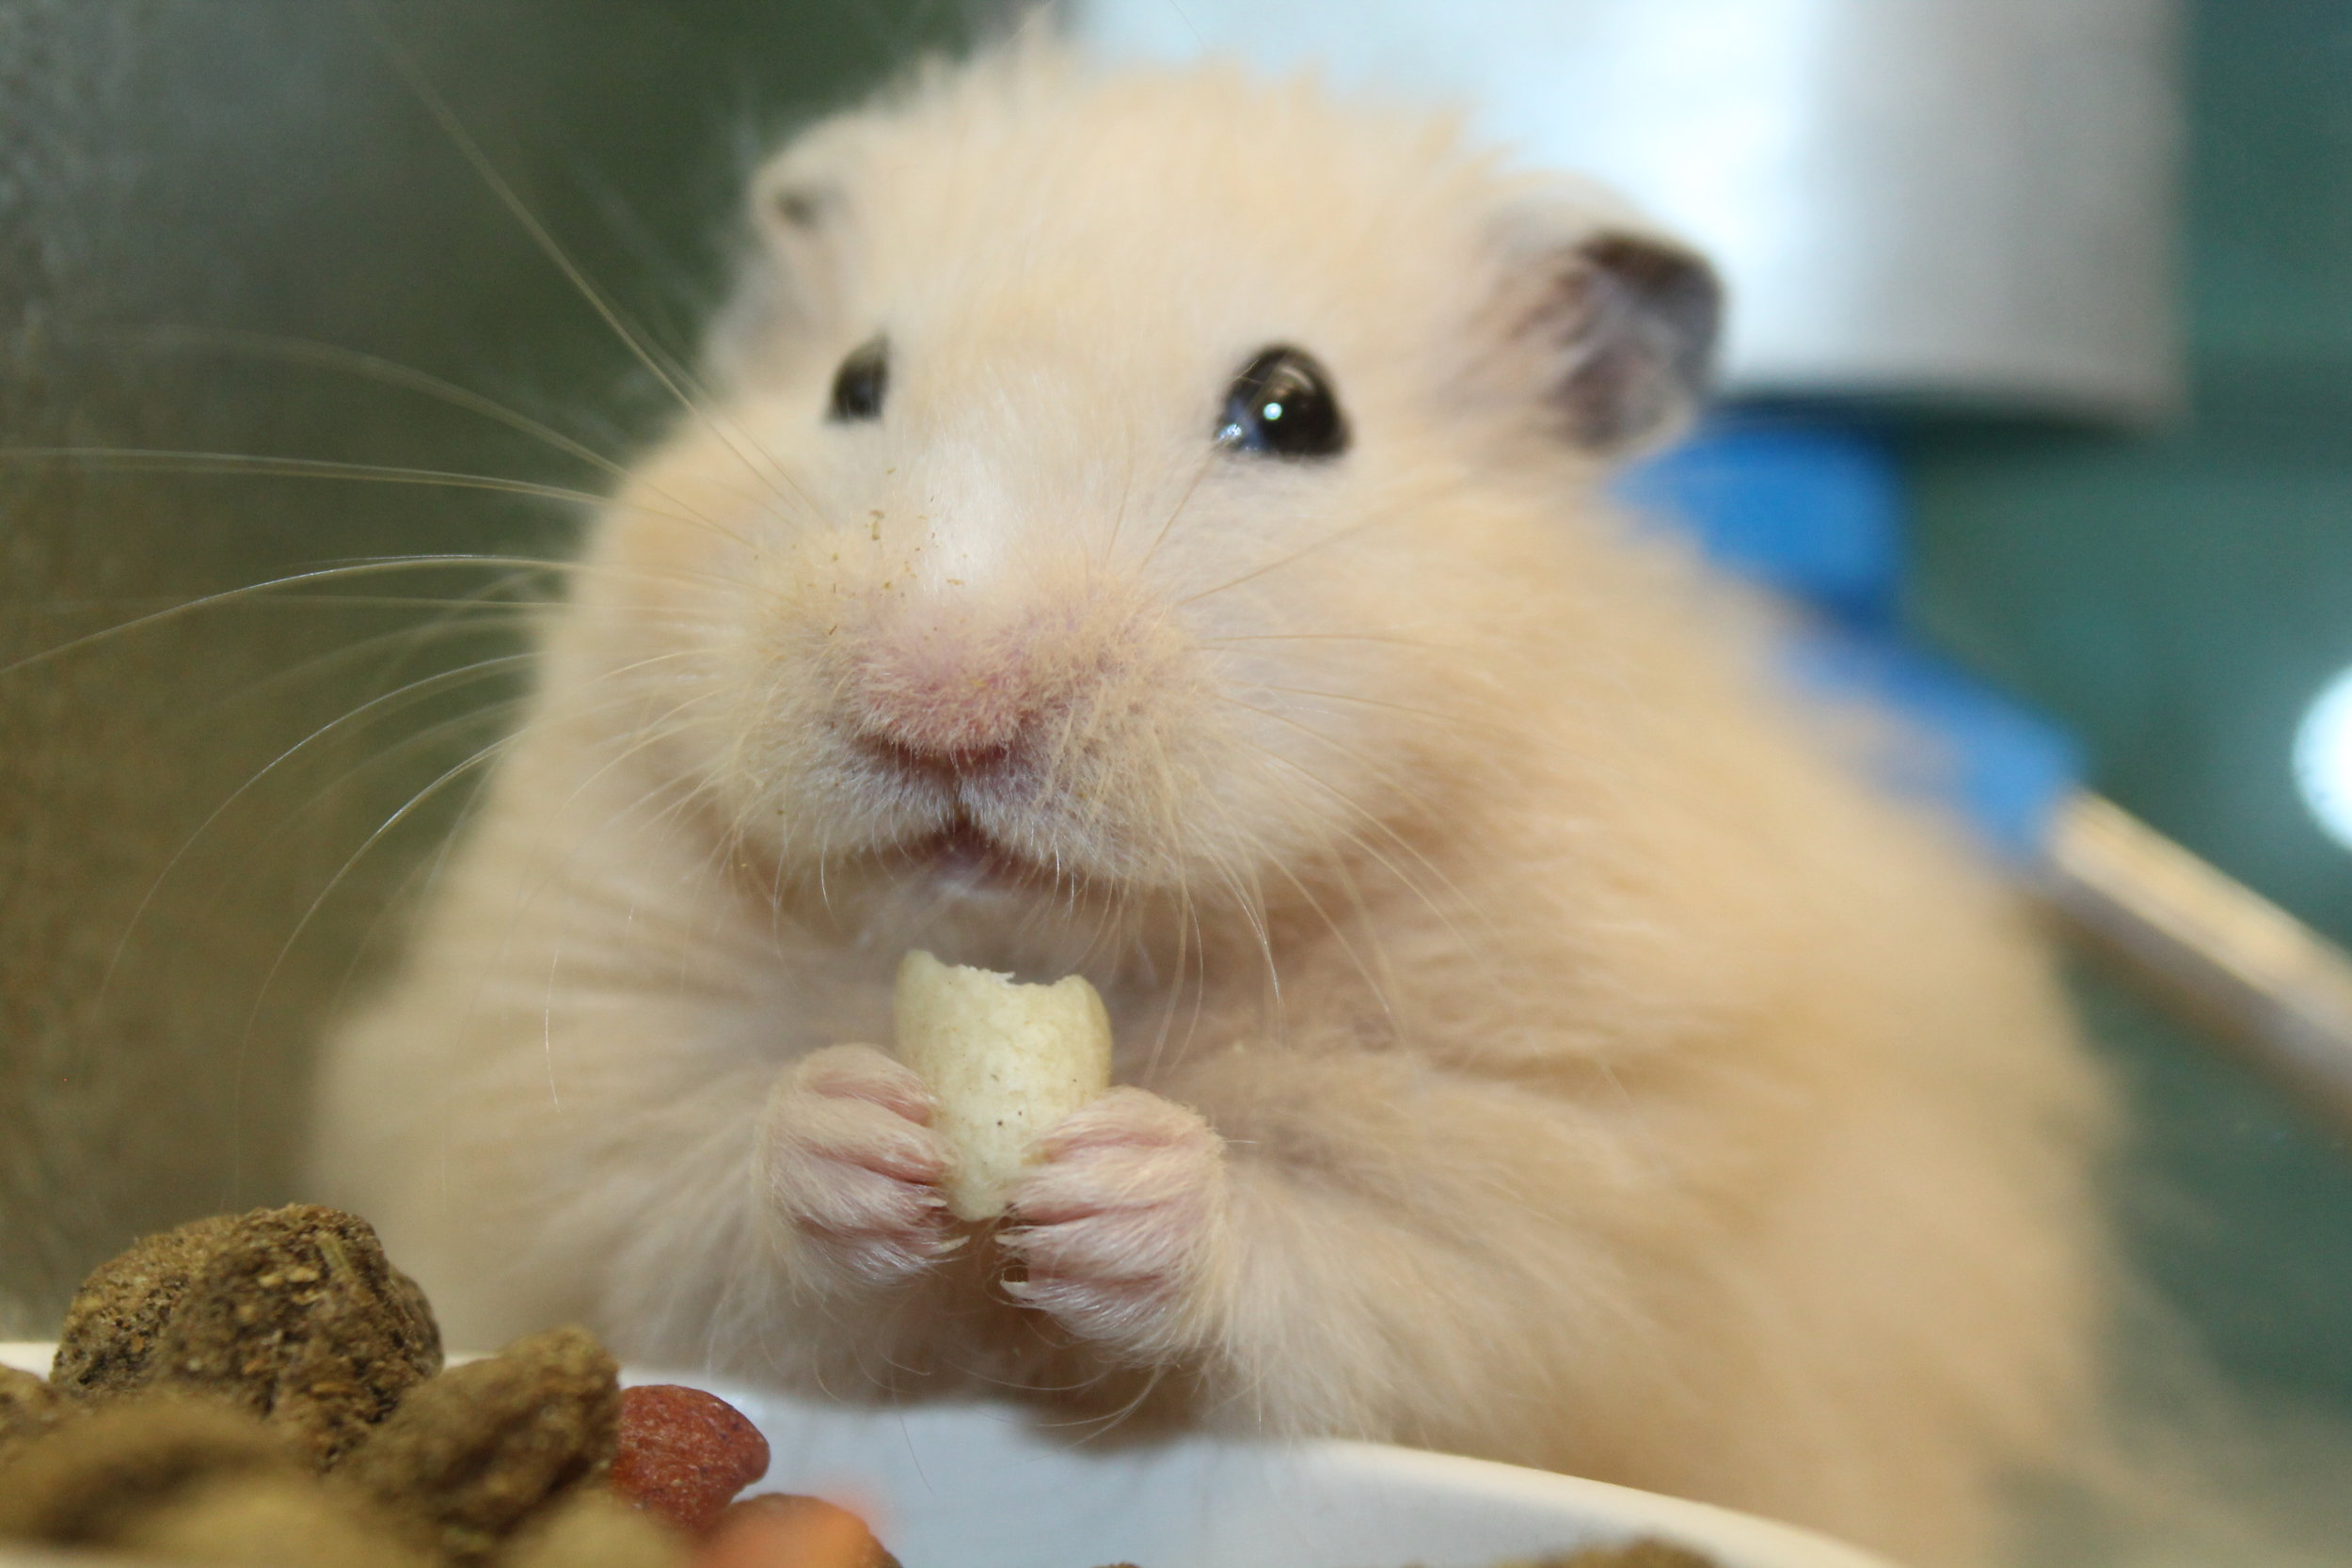 Meet Cornelius! He is an adorable, young Syrian Hamster. He is very friendly and quite handle-able and would love a home to call his own! Hamsters are easily cared for and make great pets.